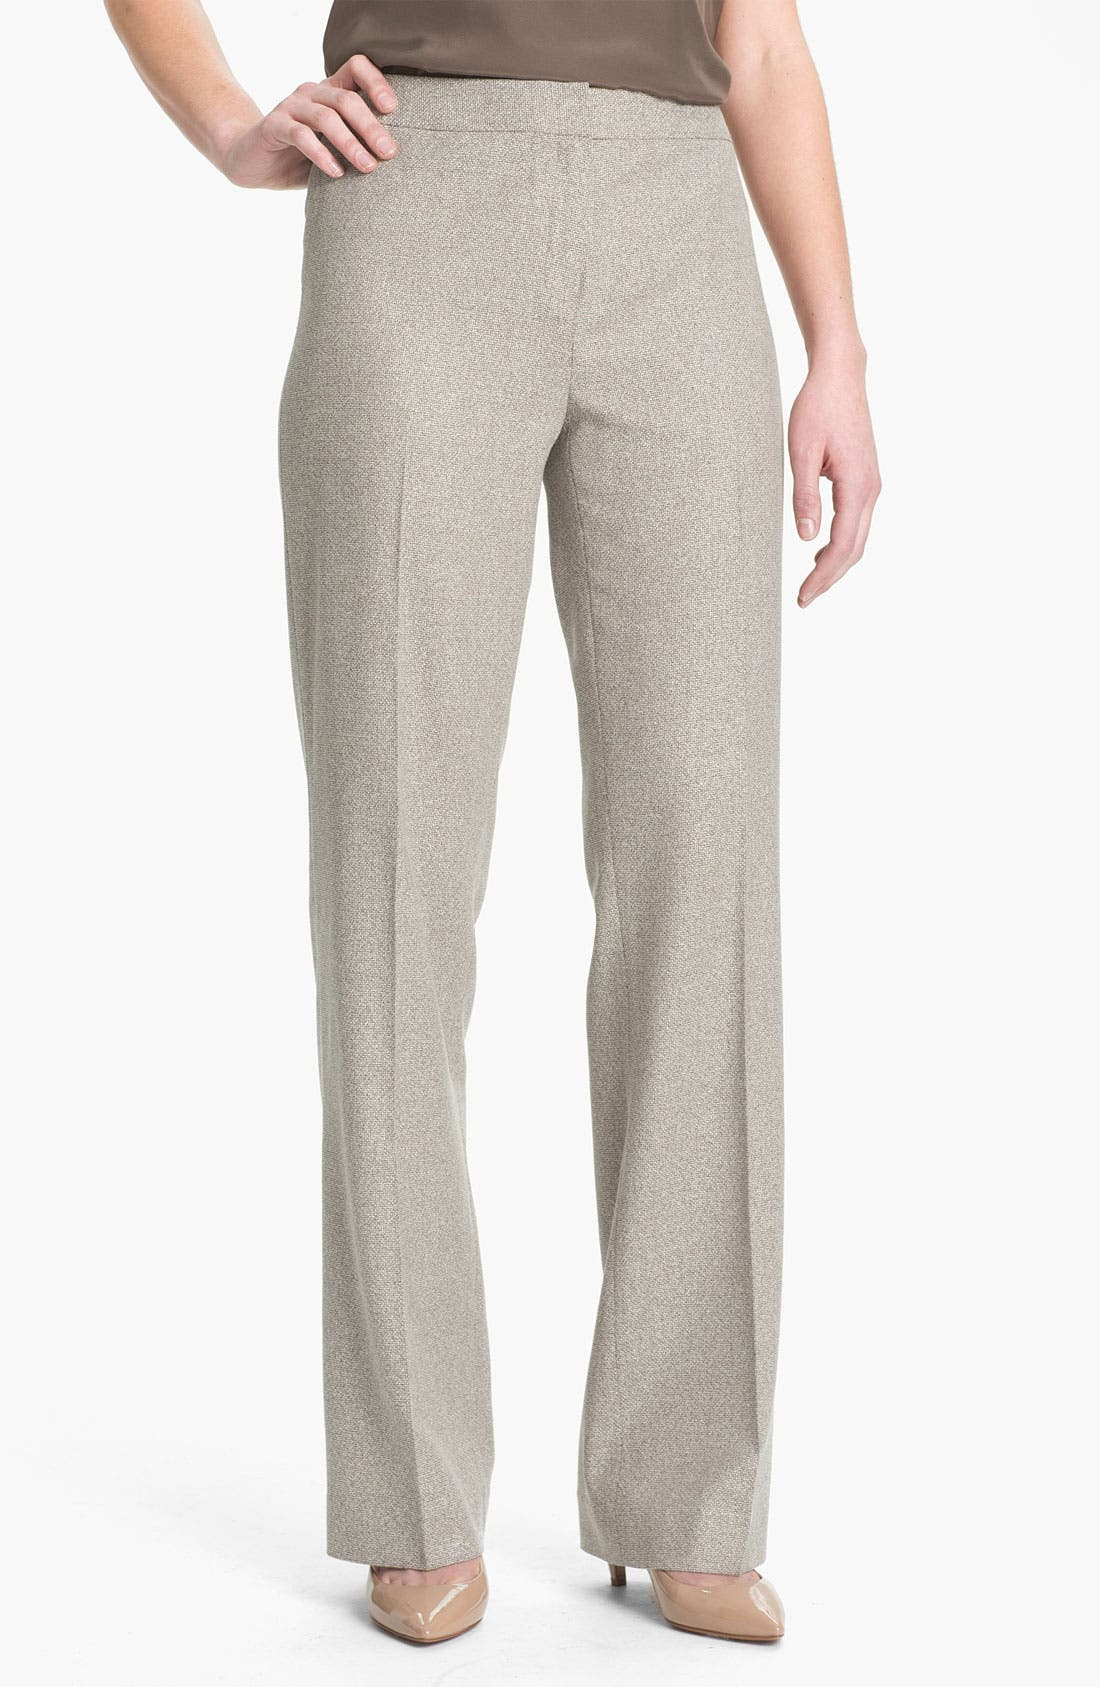 Alternate Image 1 Selected - Lafayette 148 New York Menswear Suiting Pants